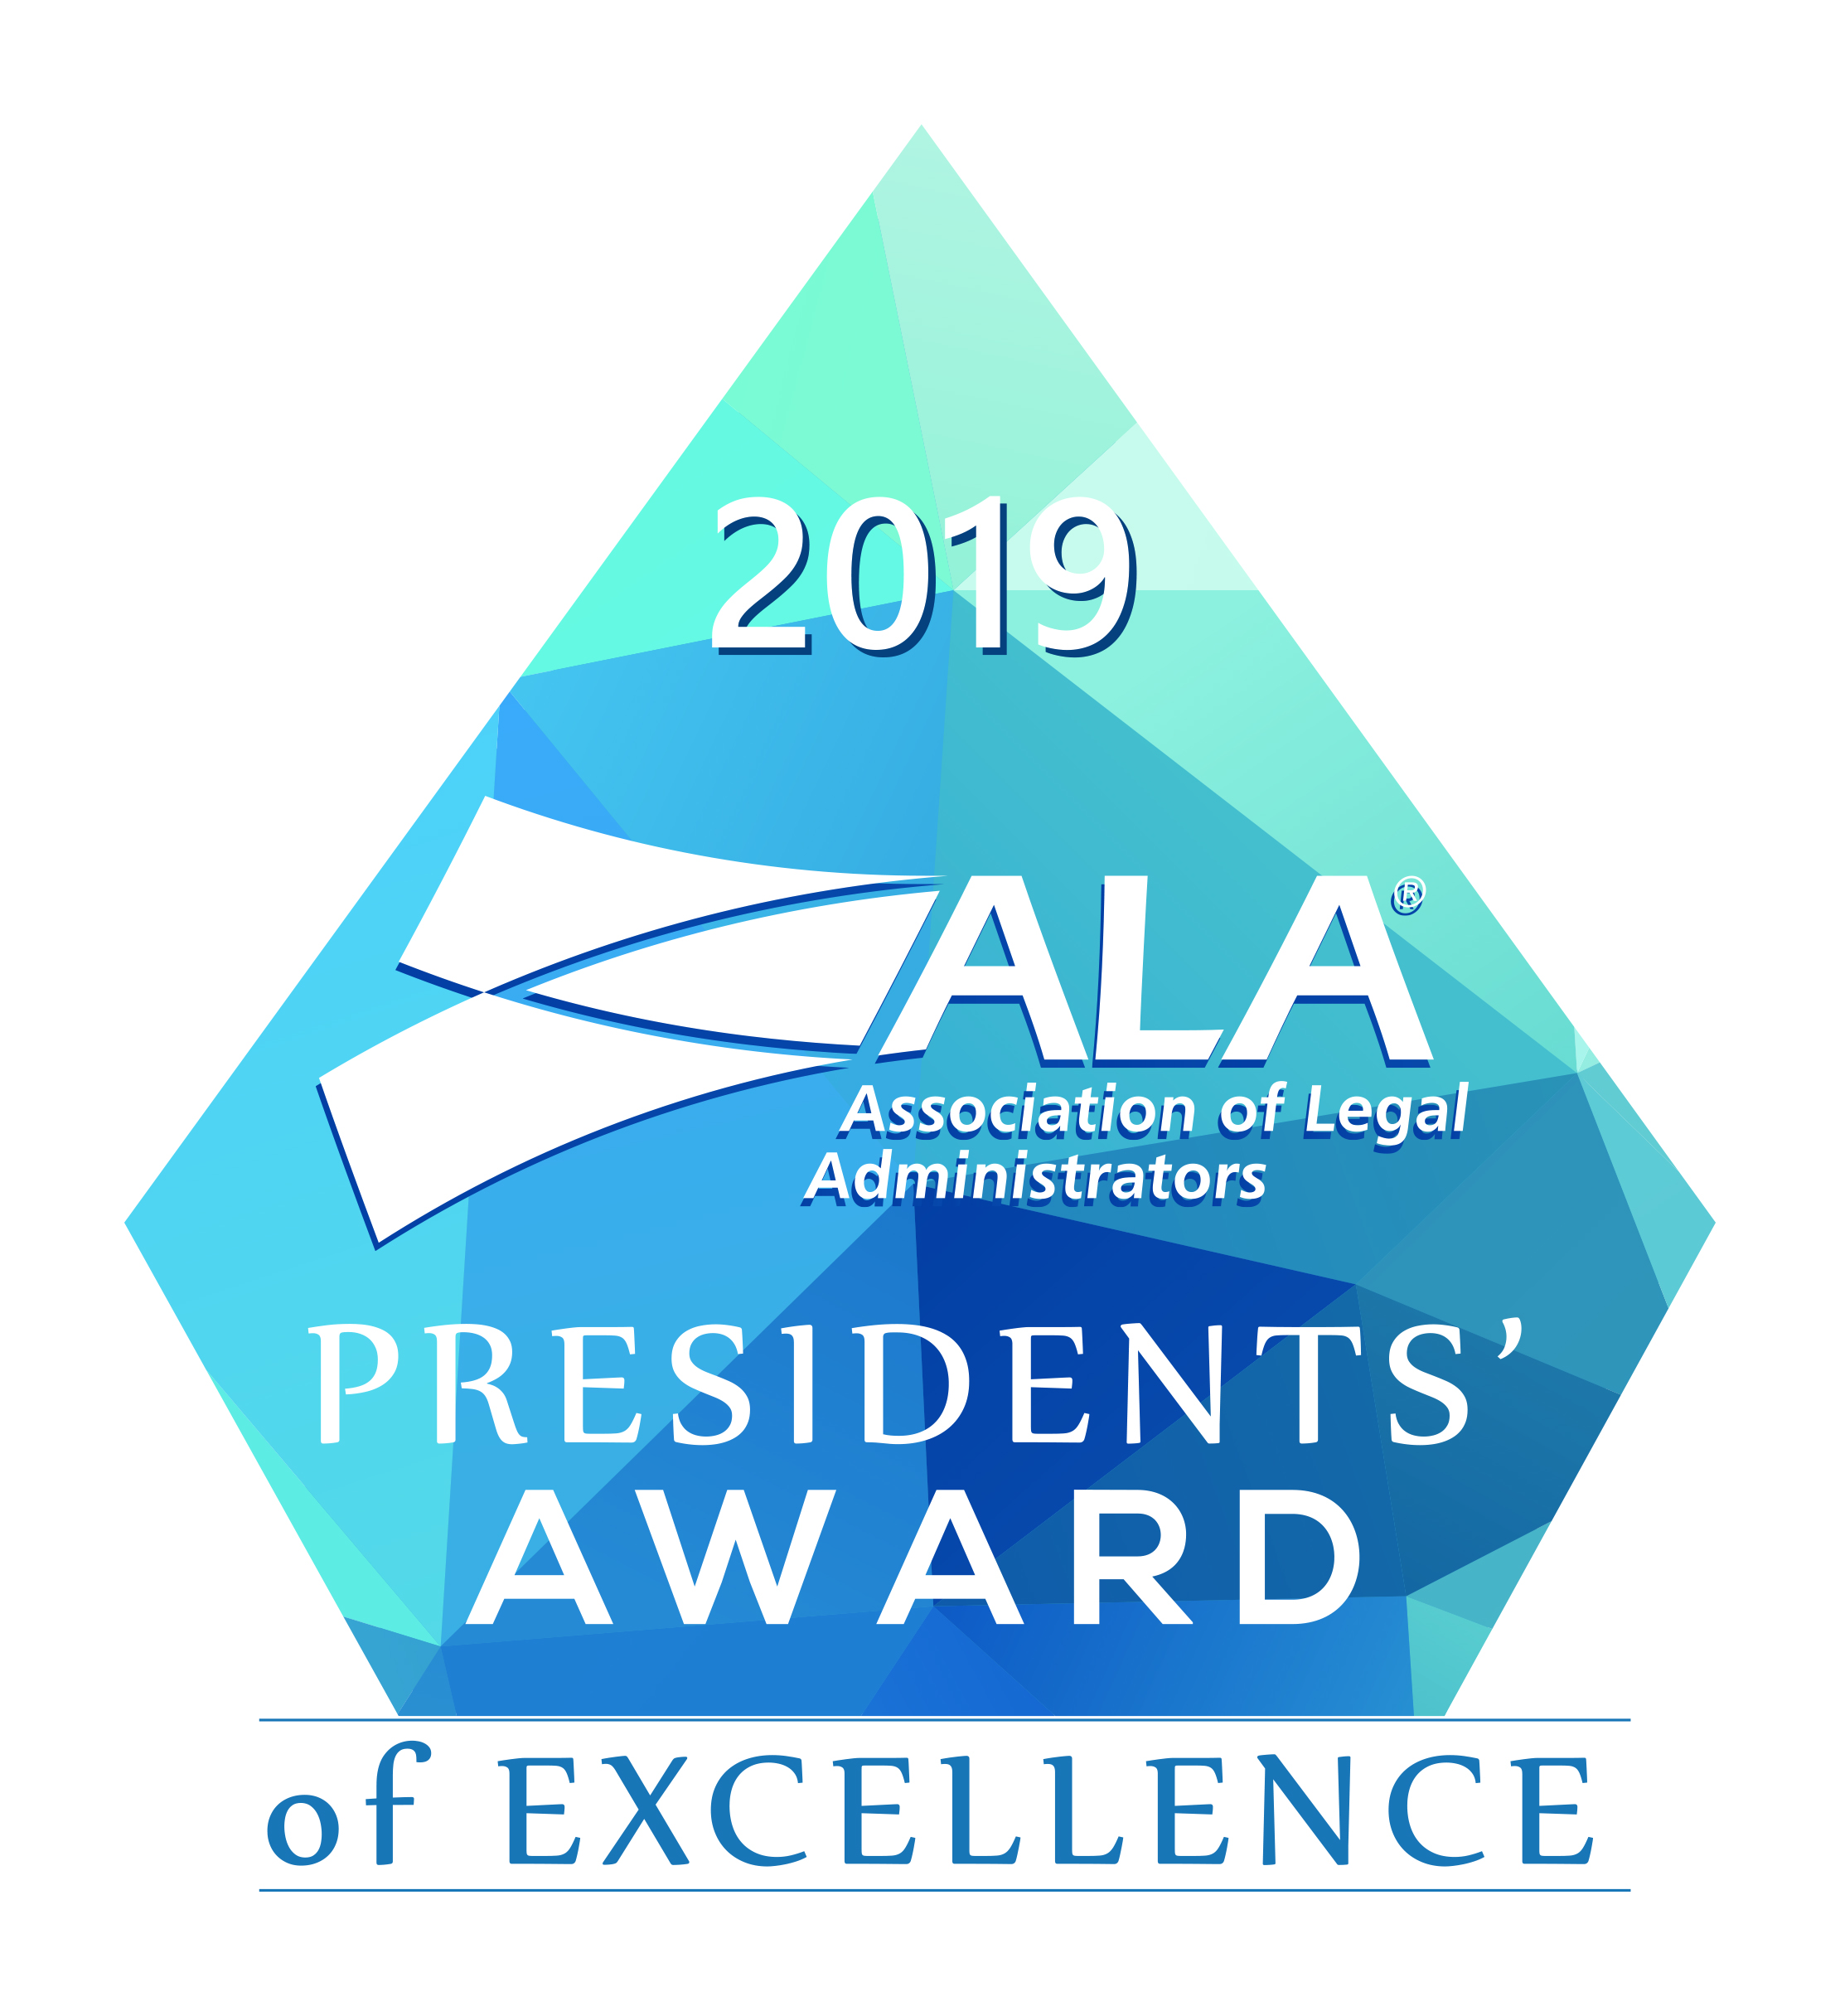 2019 ALA Presidents' Award of Excellence